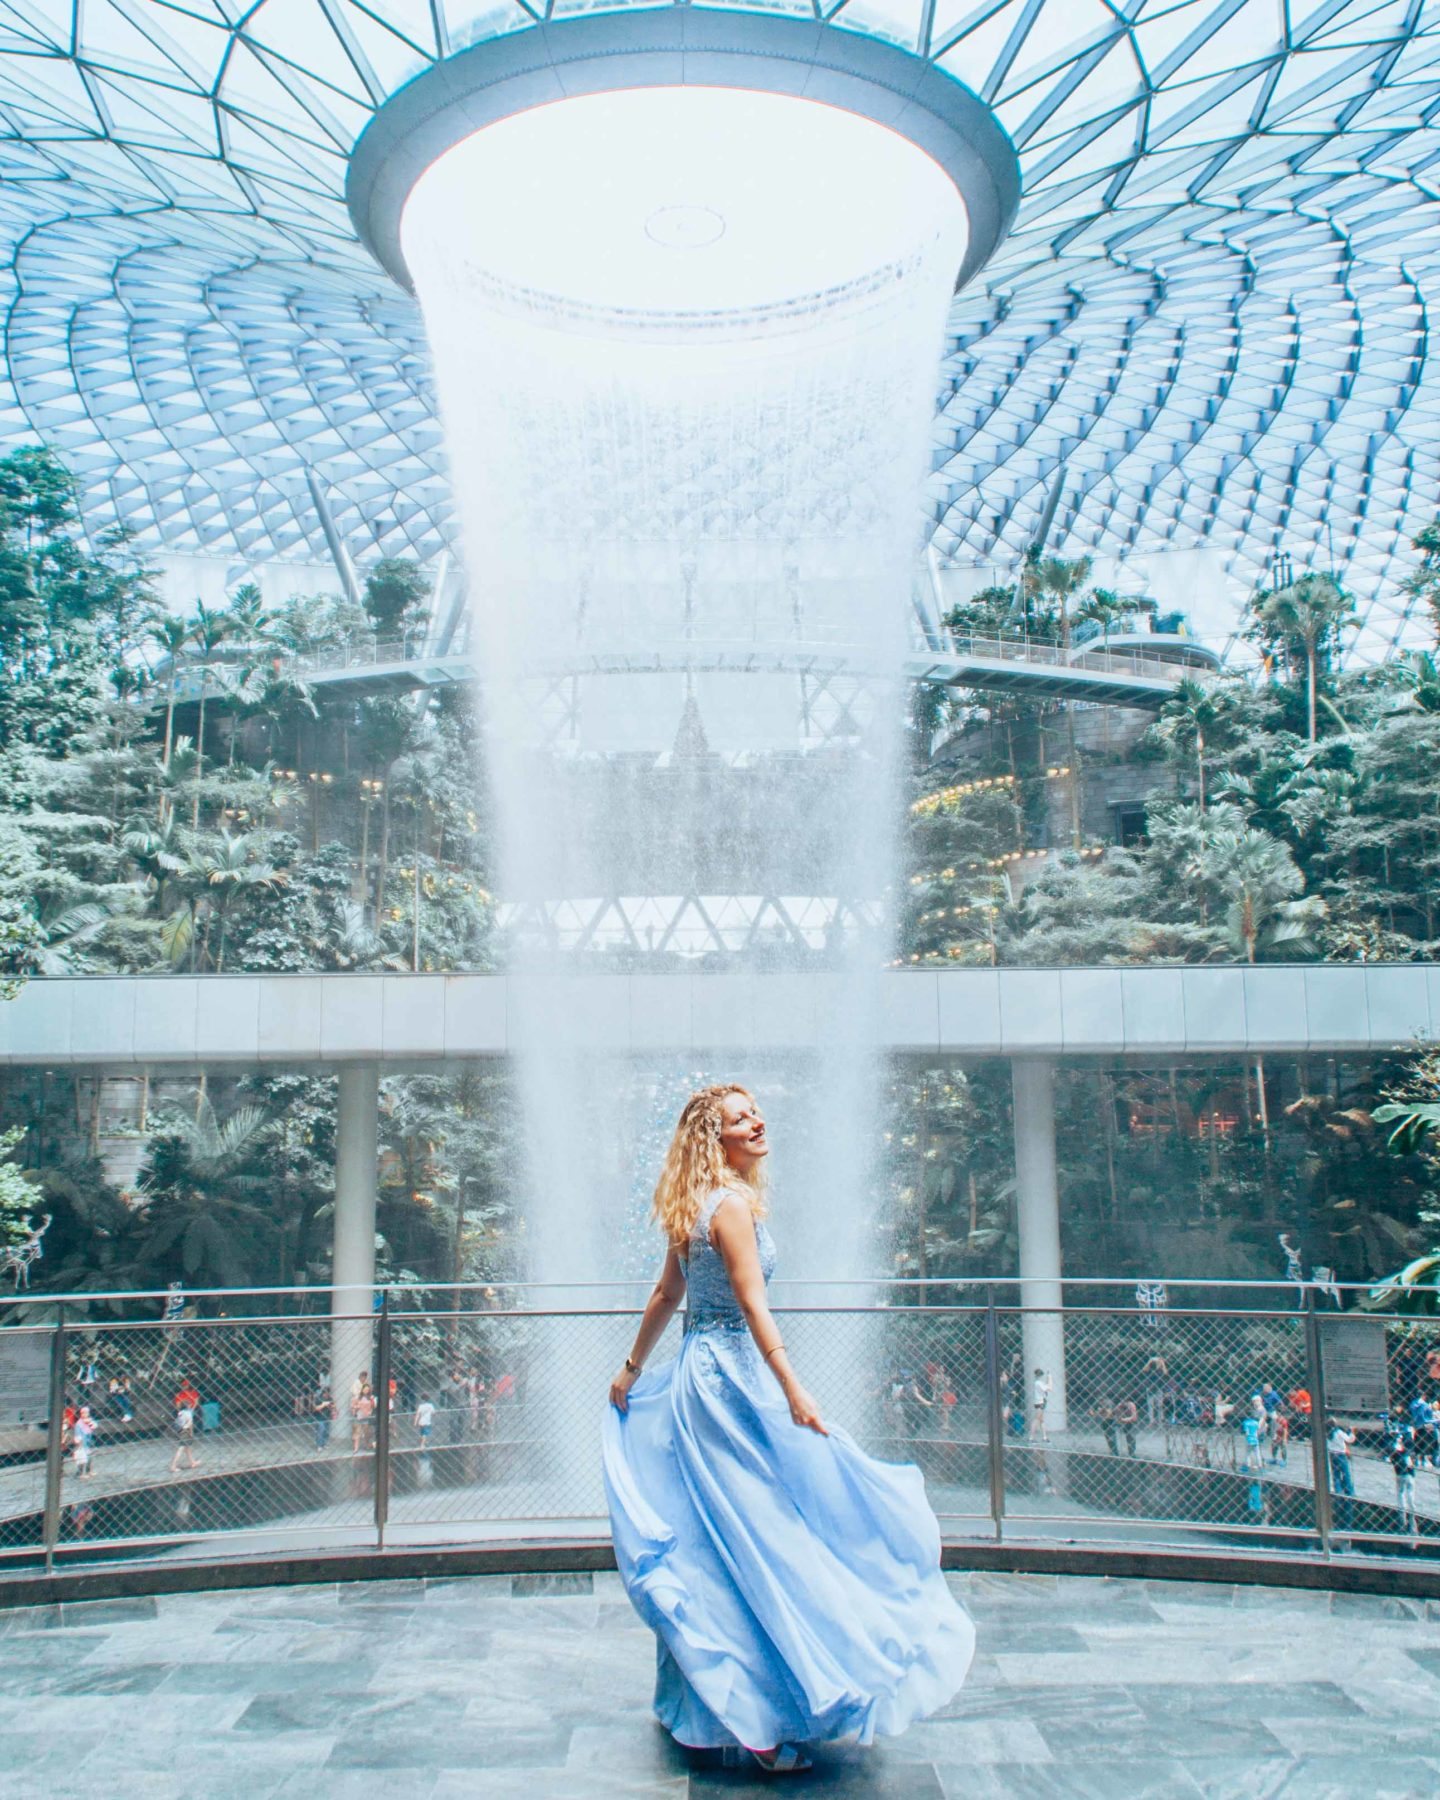 Changi airport waterfall, Jewel Rain Vortex, instagrammable spot in Singapore